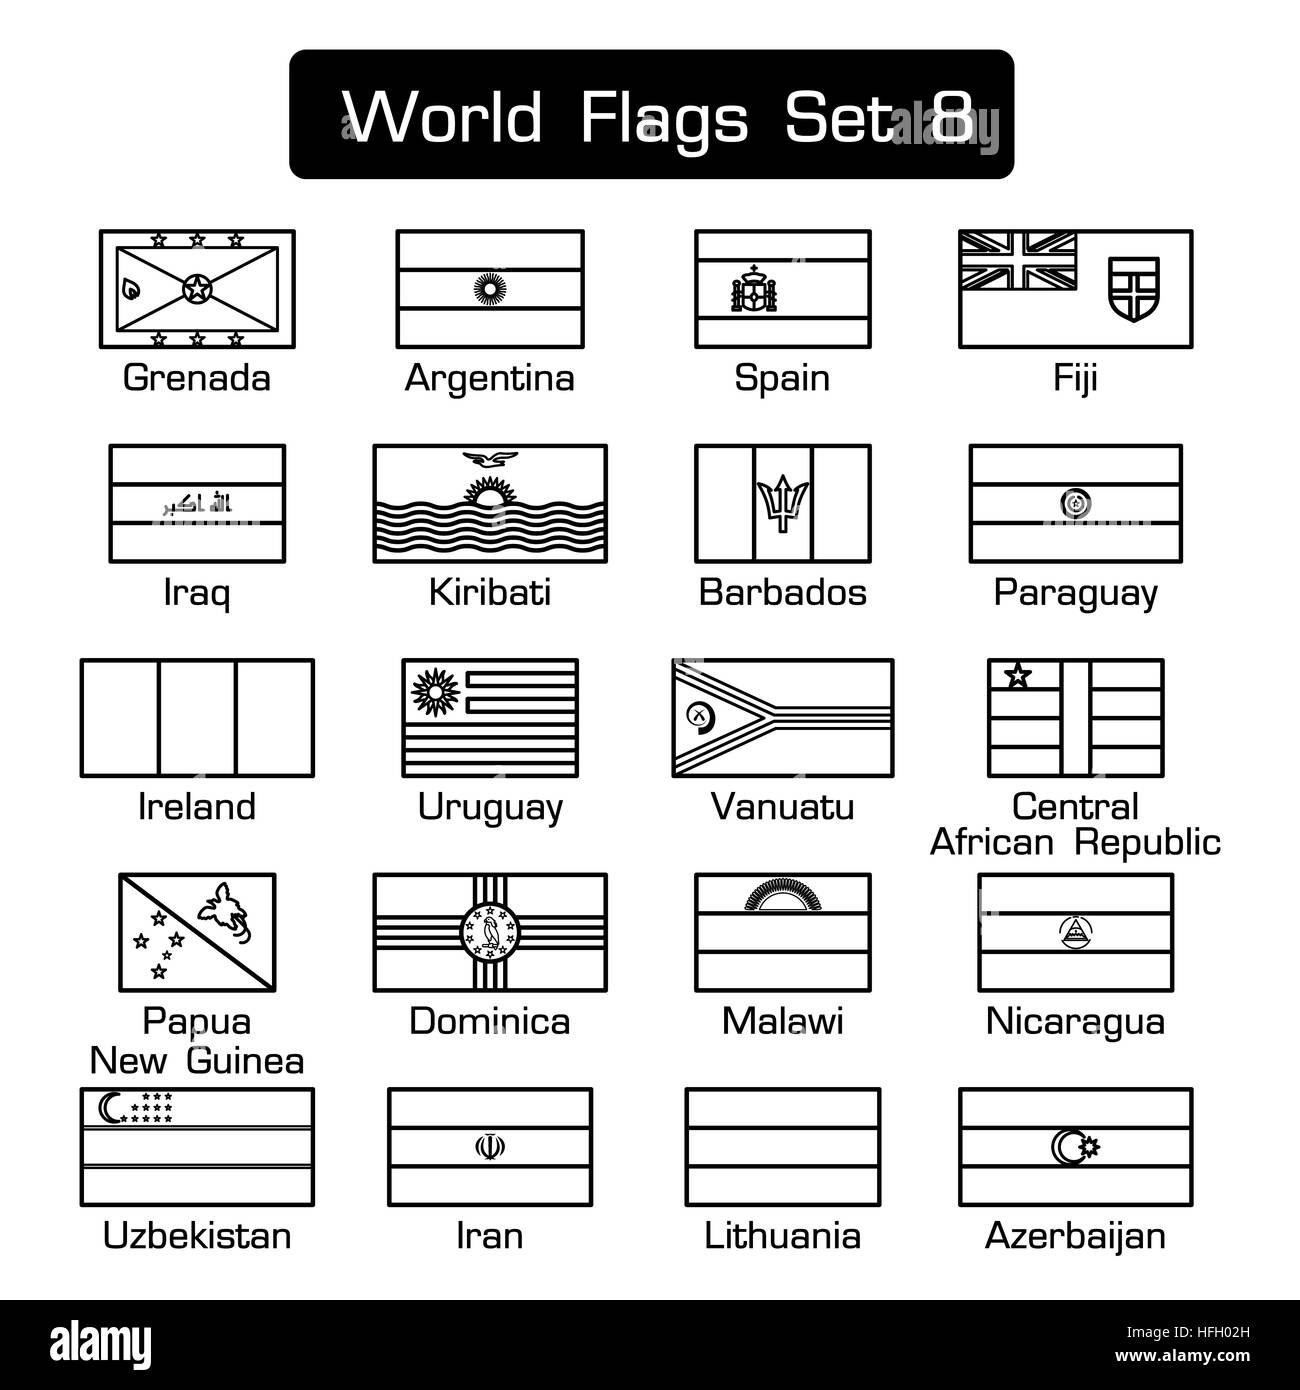 World flags set 8 . simple style and flat design . thick outline . - Stock Image